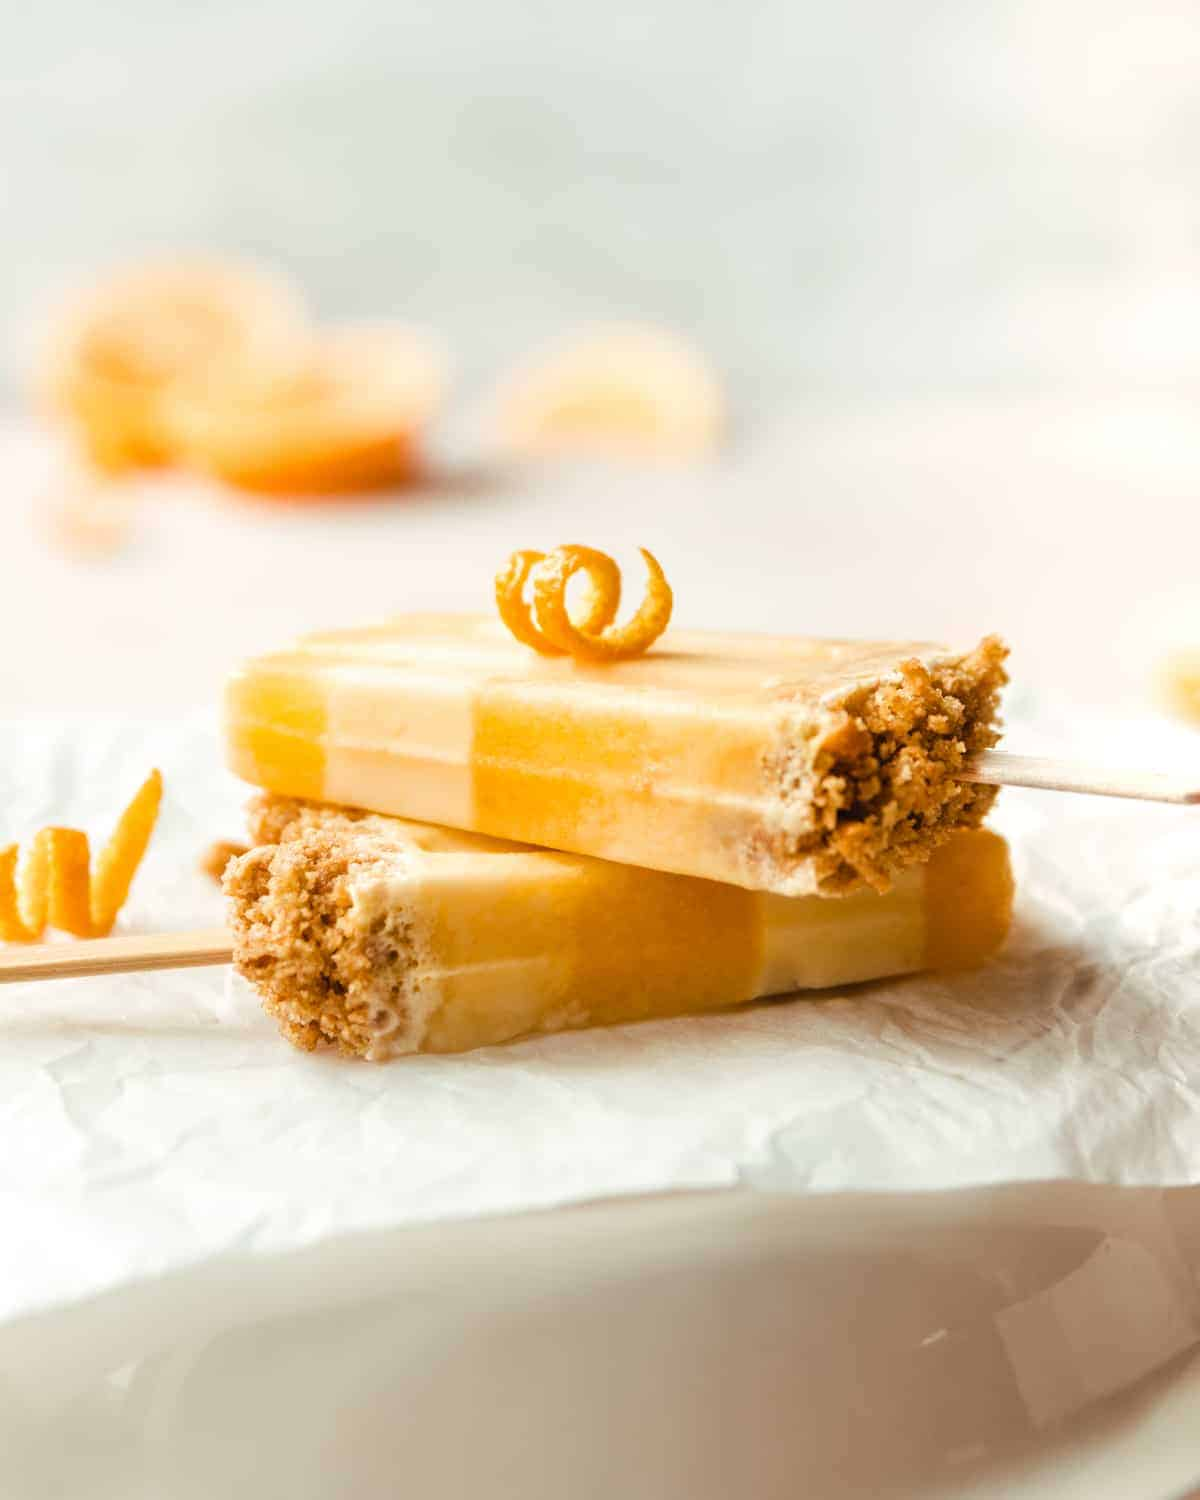 Add a touch of crunch to your creamsicles with this graham cracker crumble.